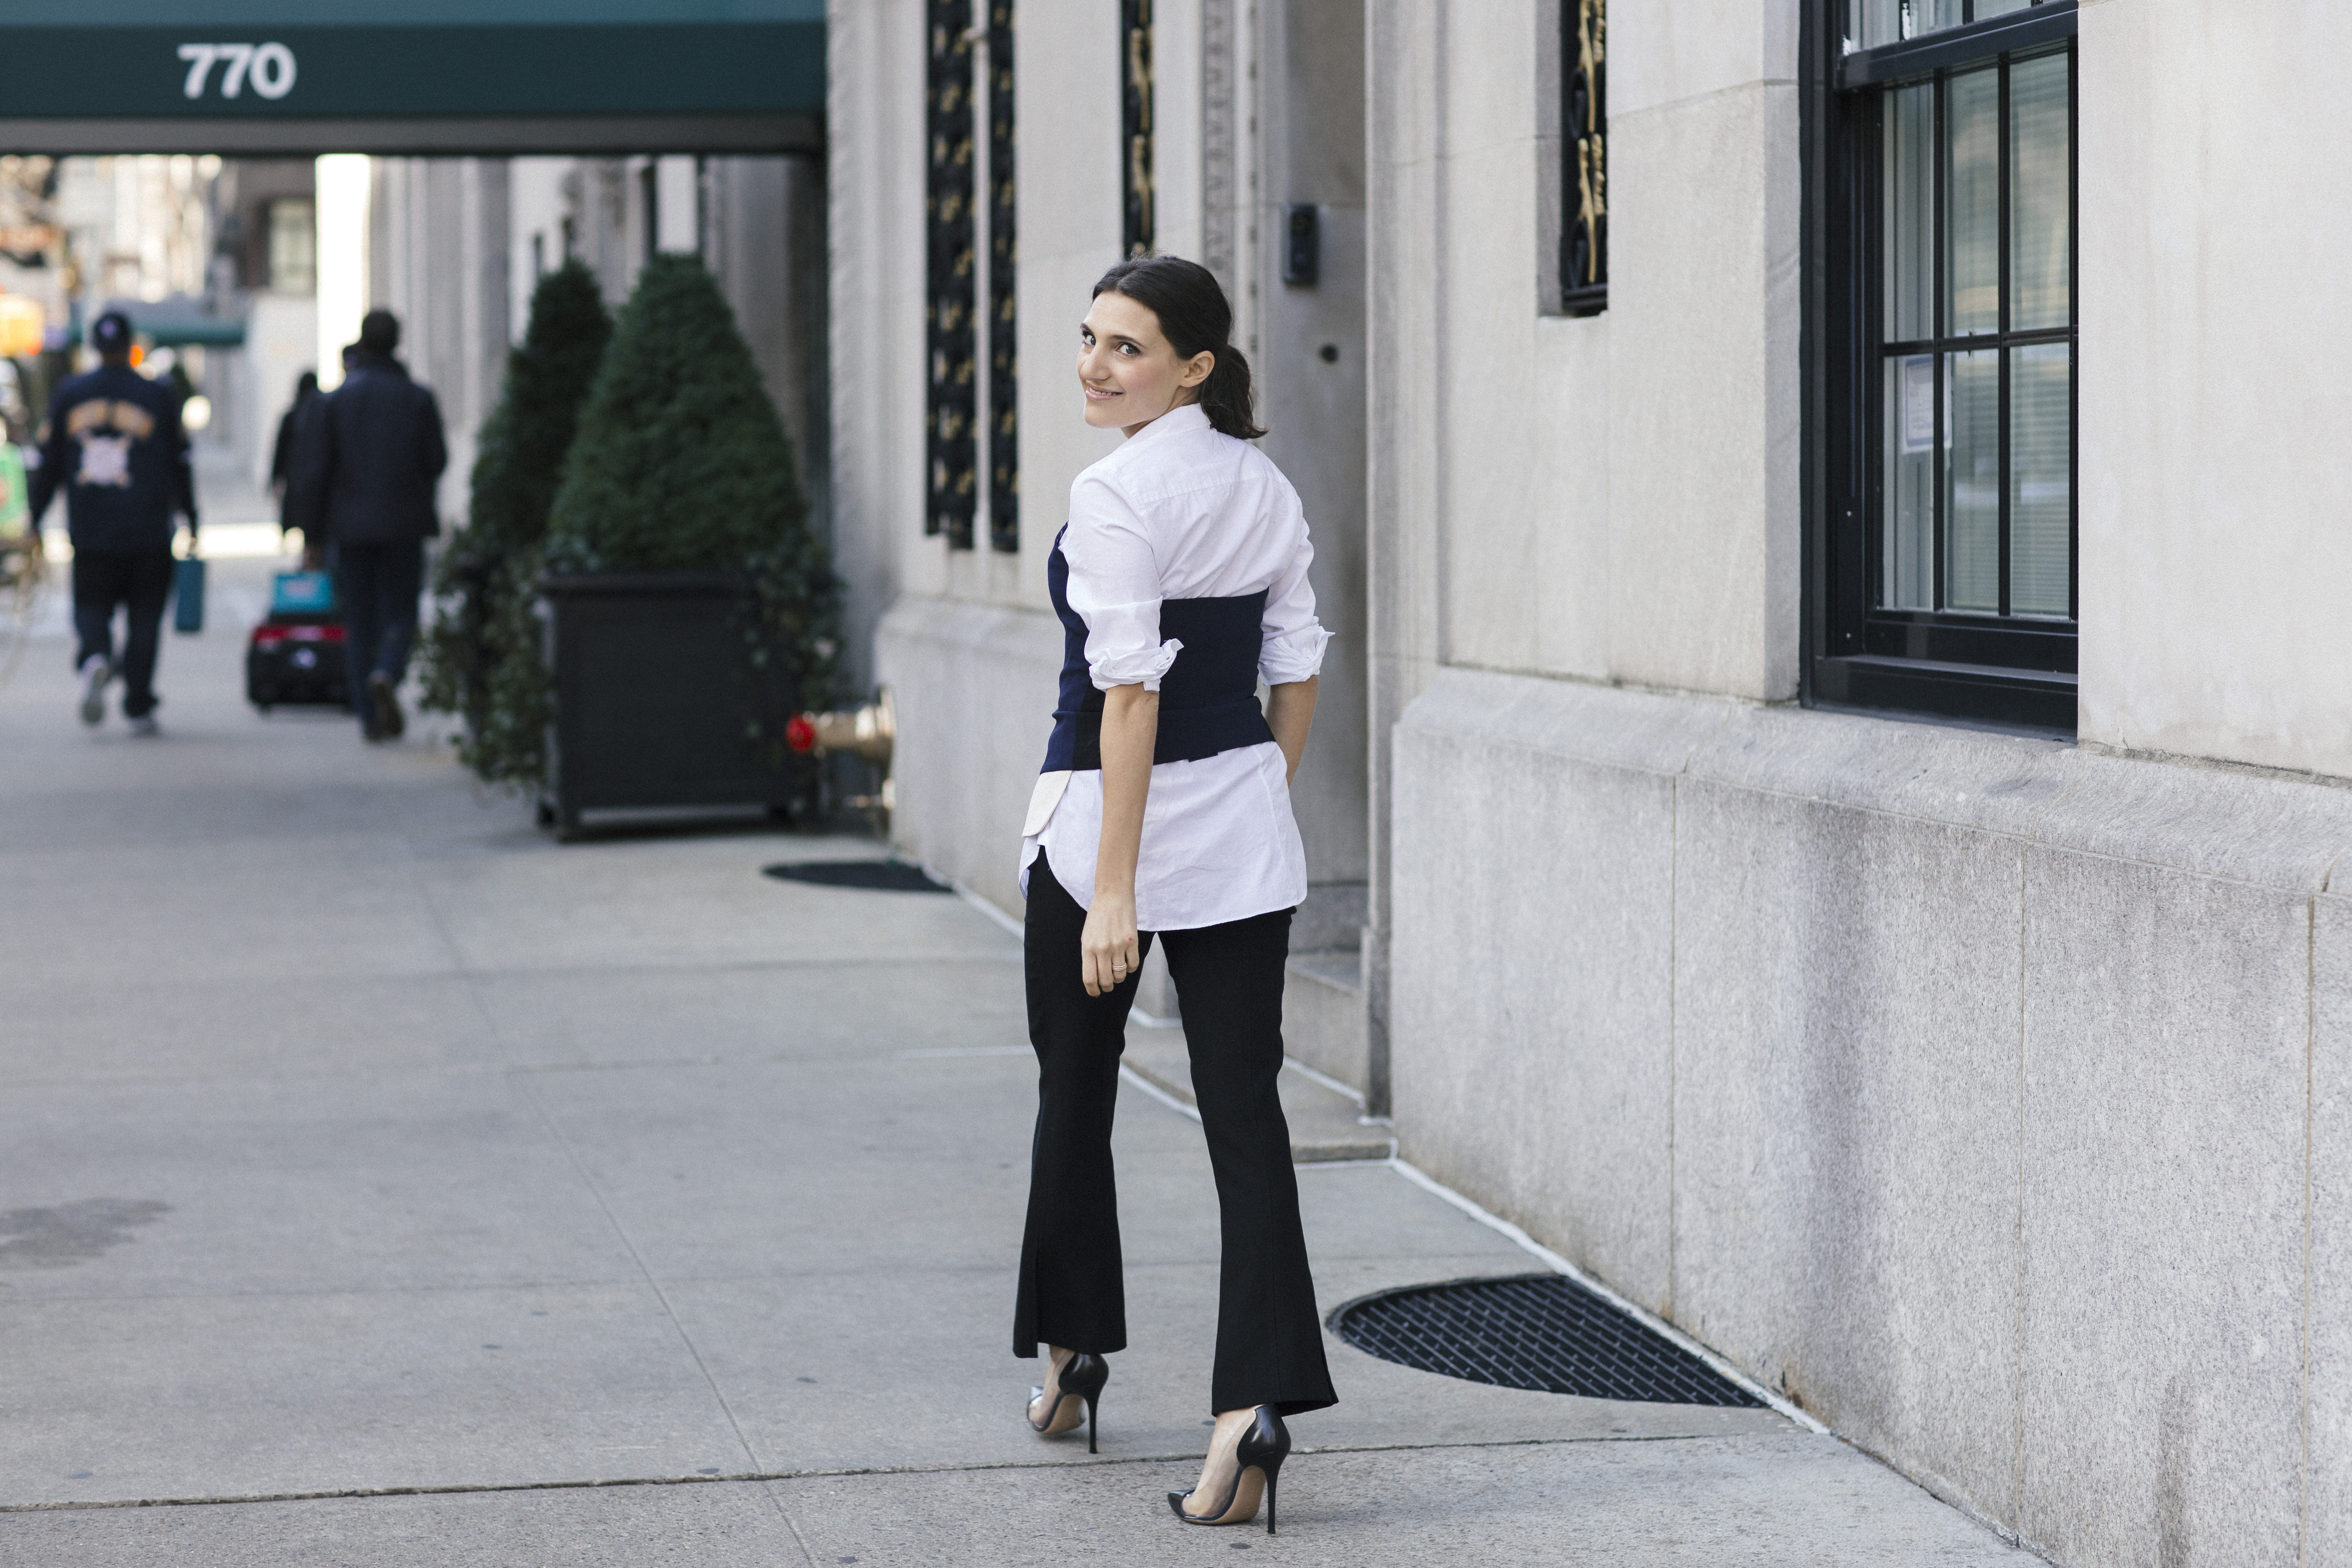 lifestyle blogger That Pencil Skirt wearing crop flare black pants, a white button down top and a laveer bustier